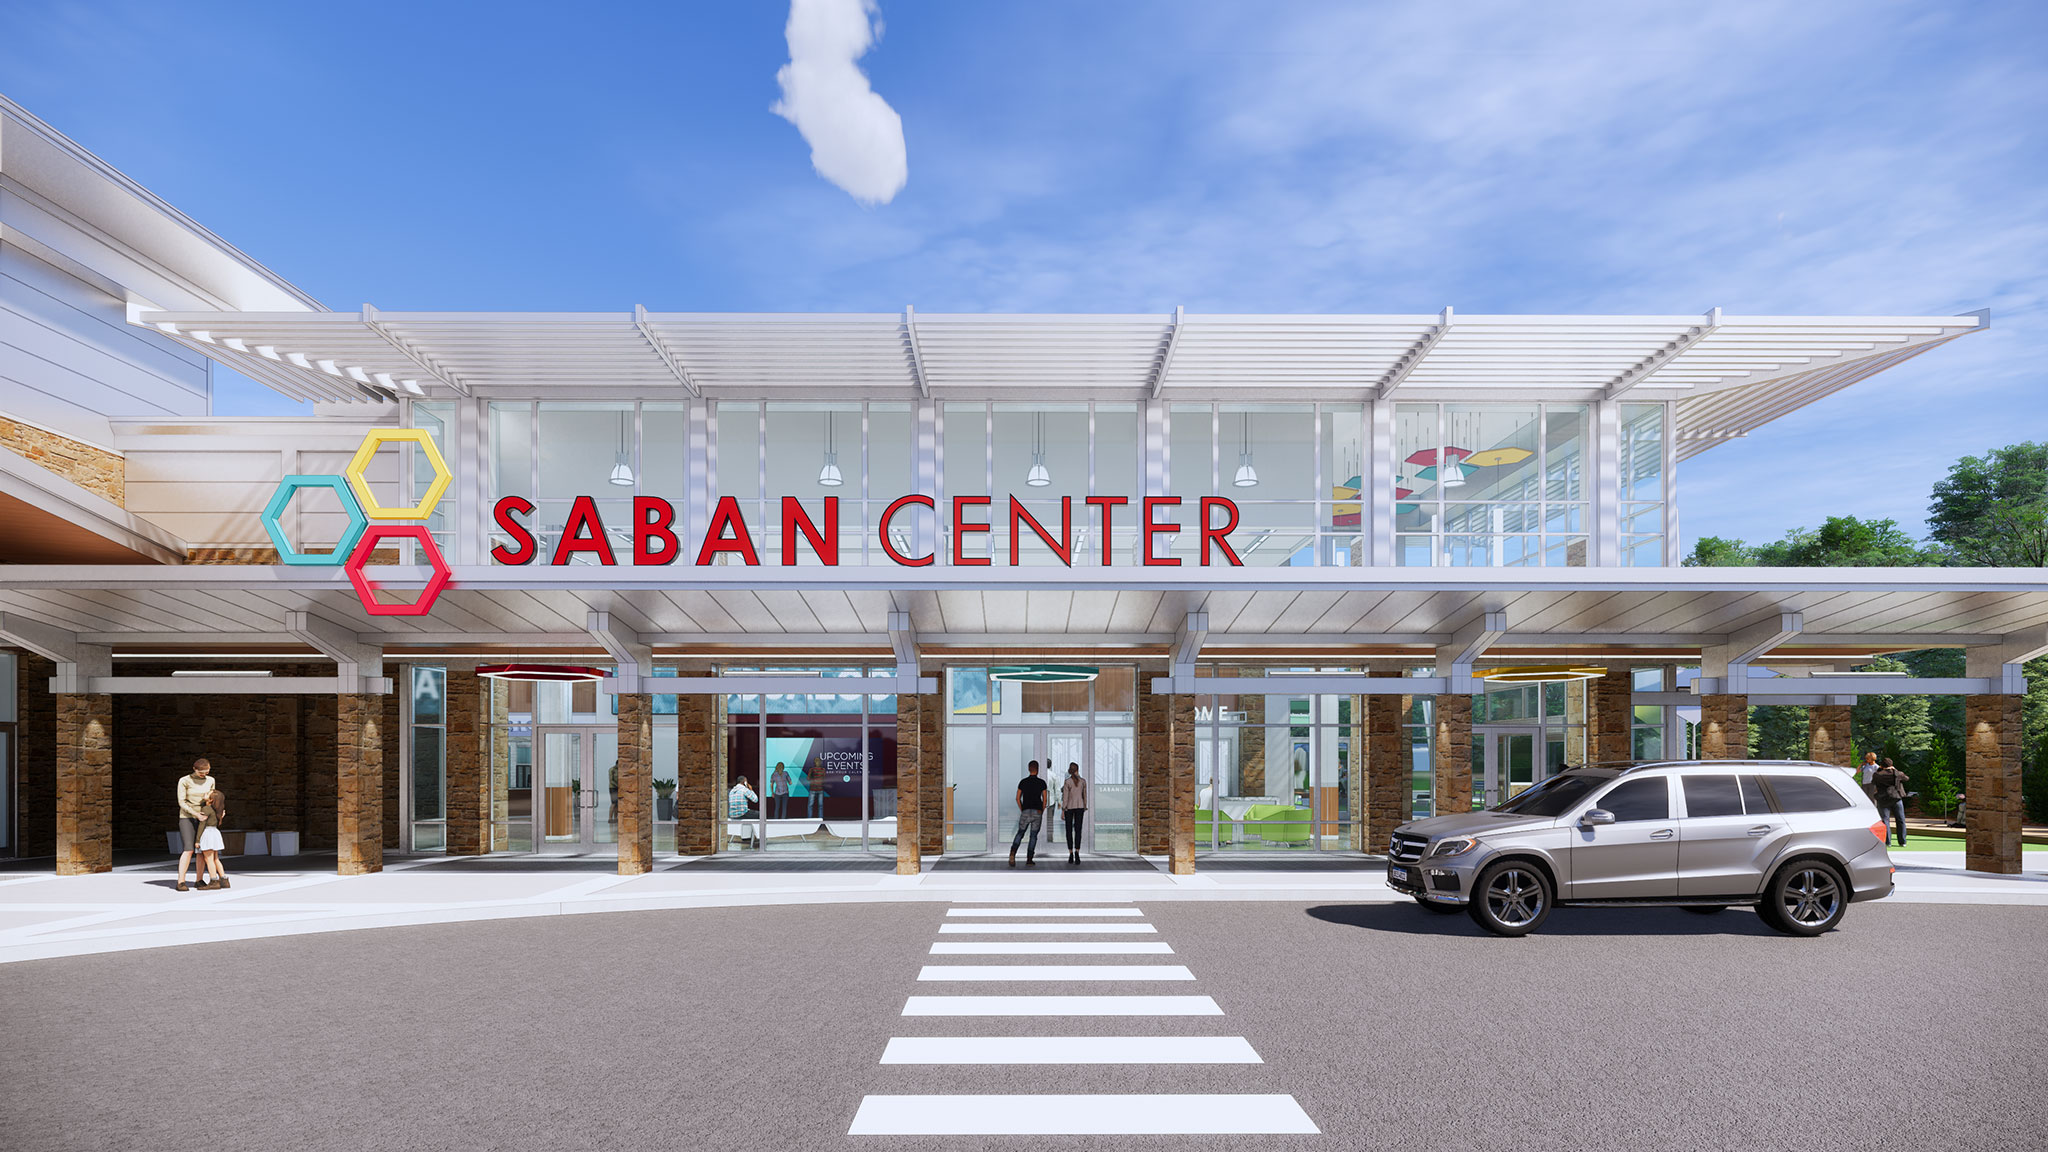 The Saban Center